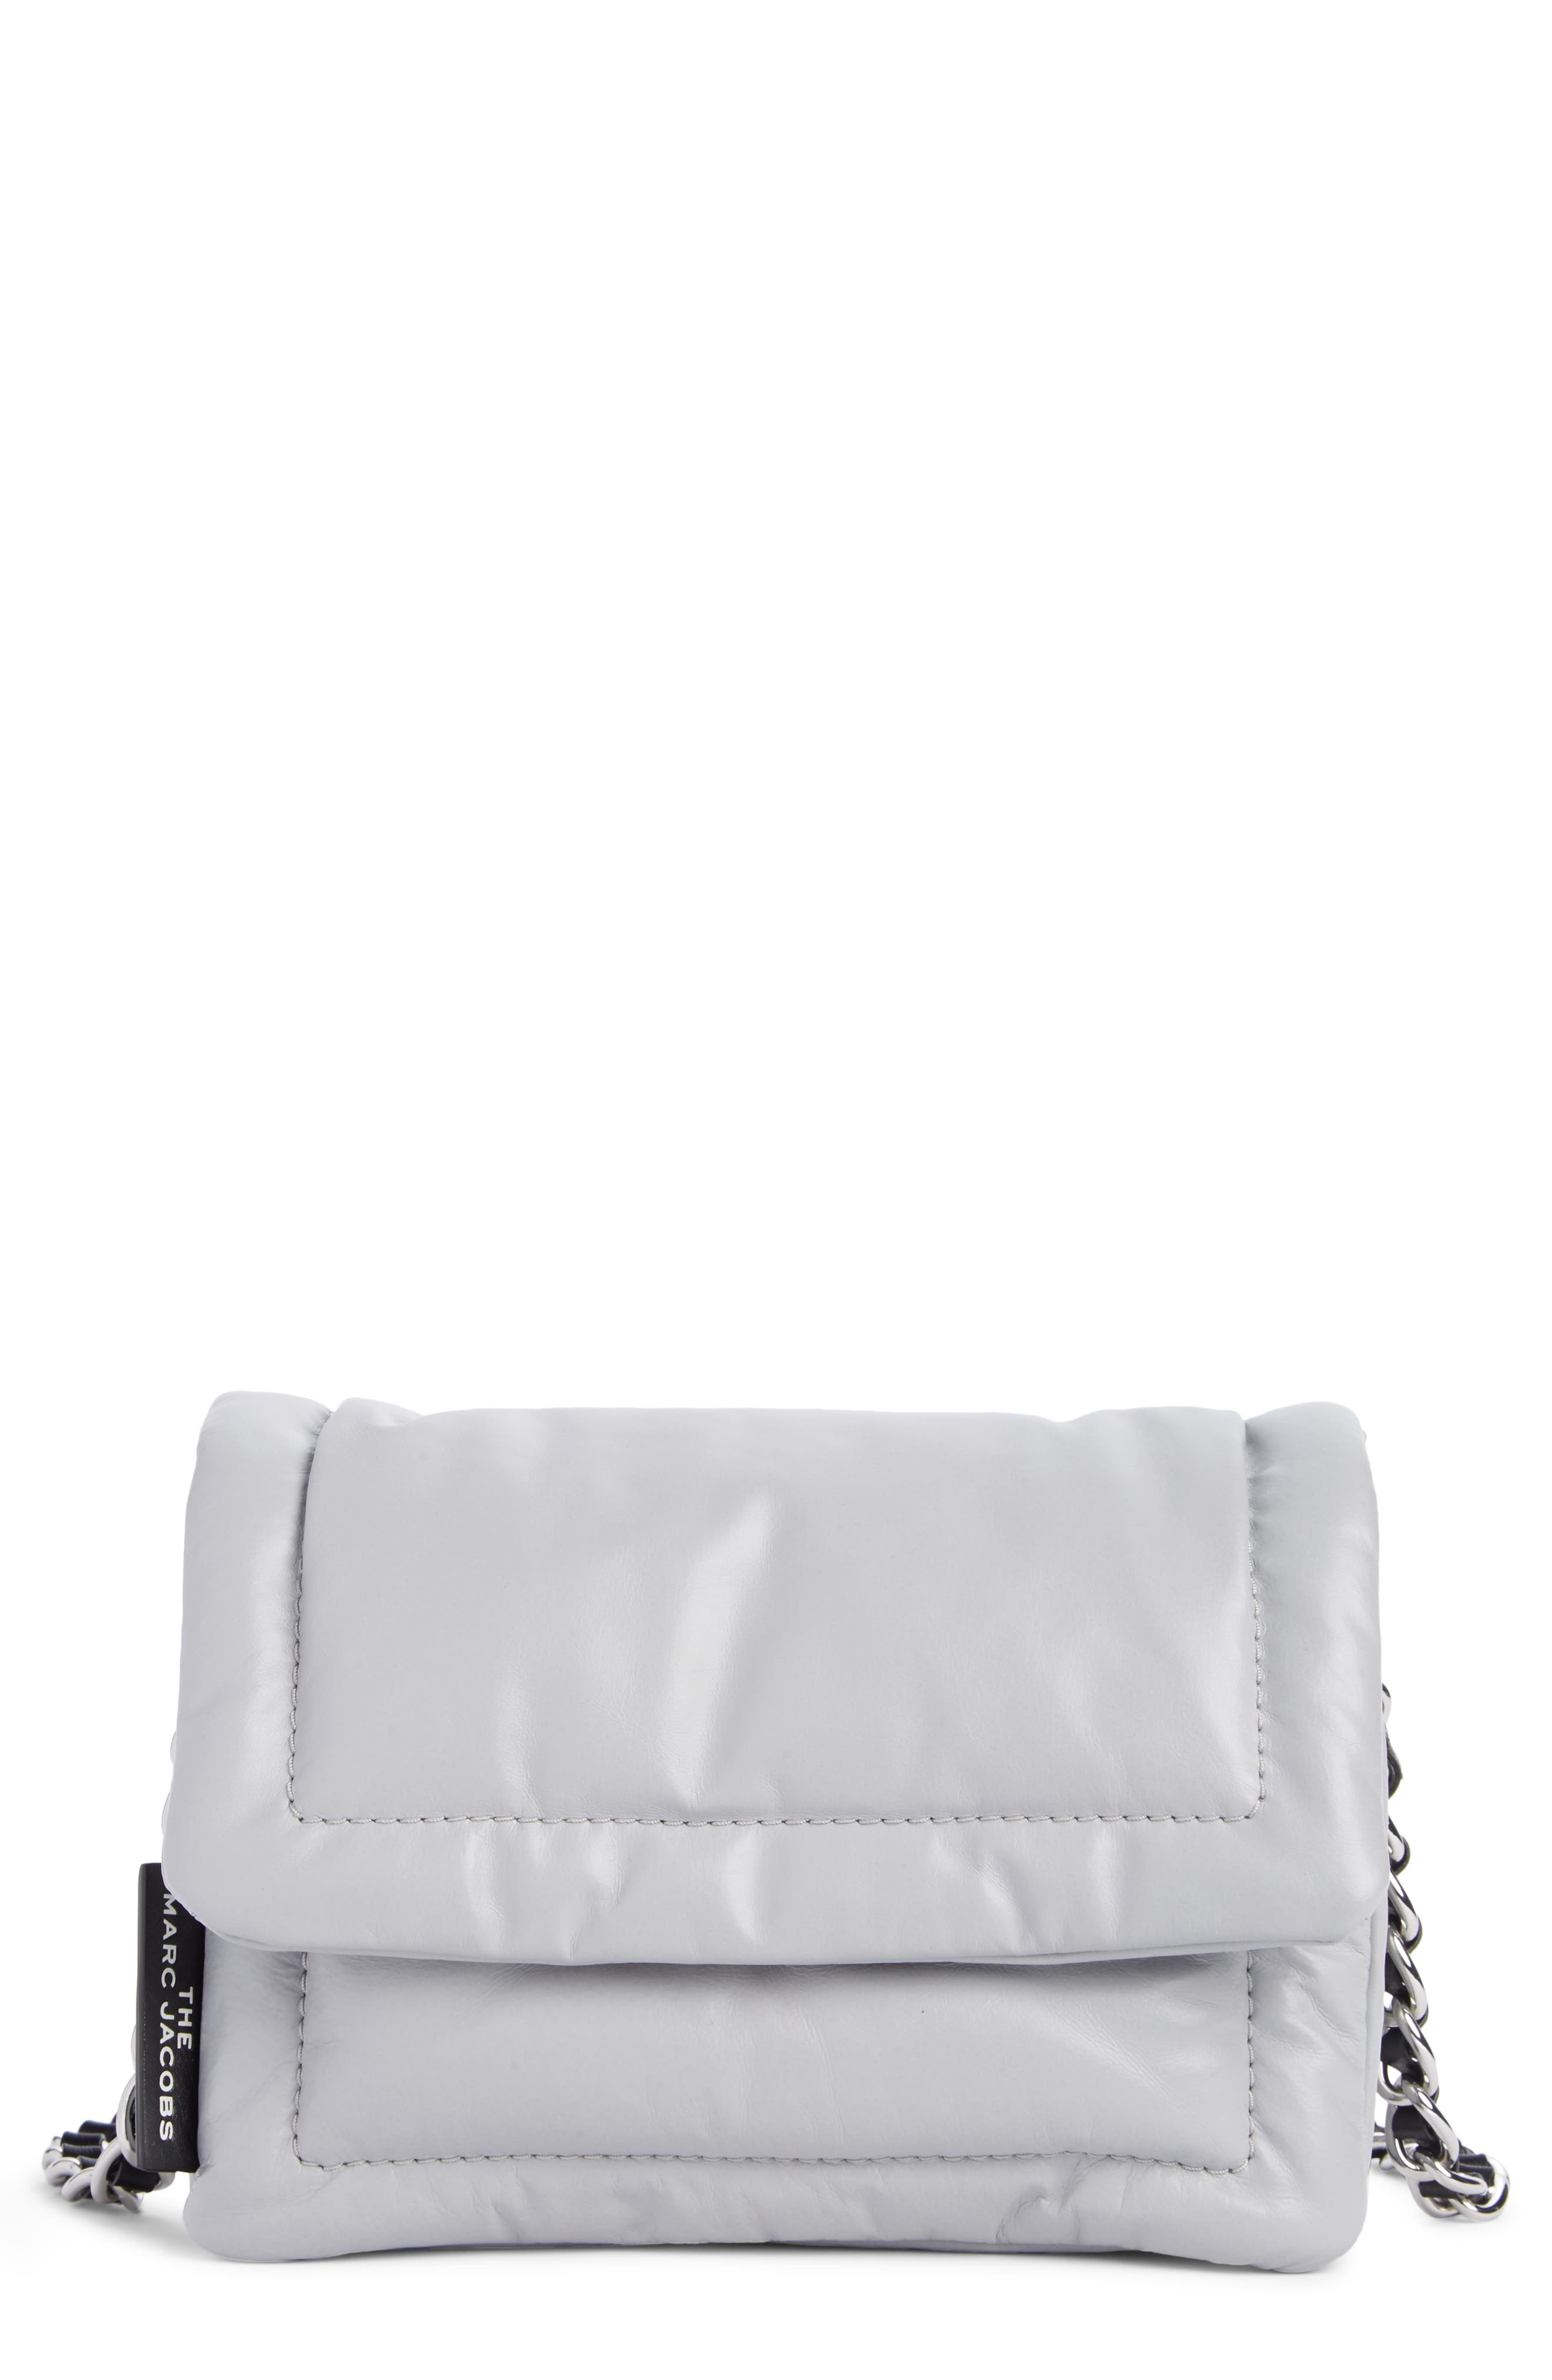 Image of THE MARC JACOBS Mini Pillow Leather Shoulder Bag